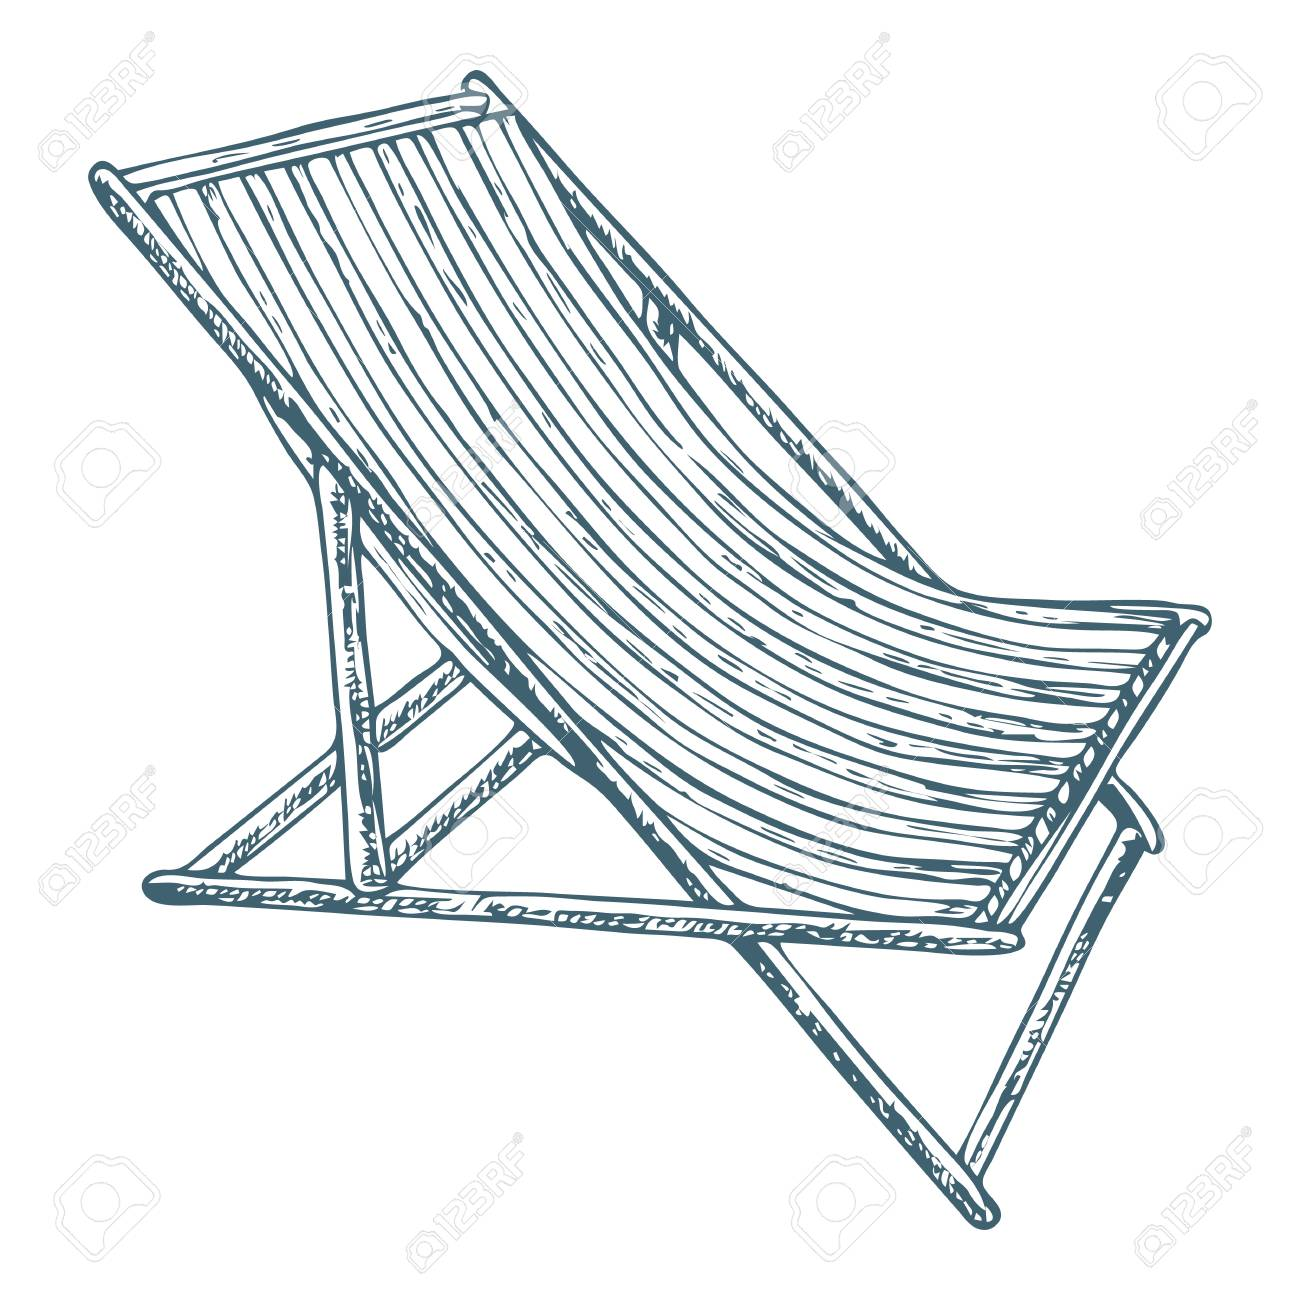 Beach lounge chair on white background, cartoon illustration of beach accessories for summer holidays. Vector - 93710362